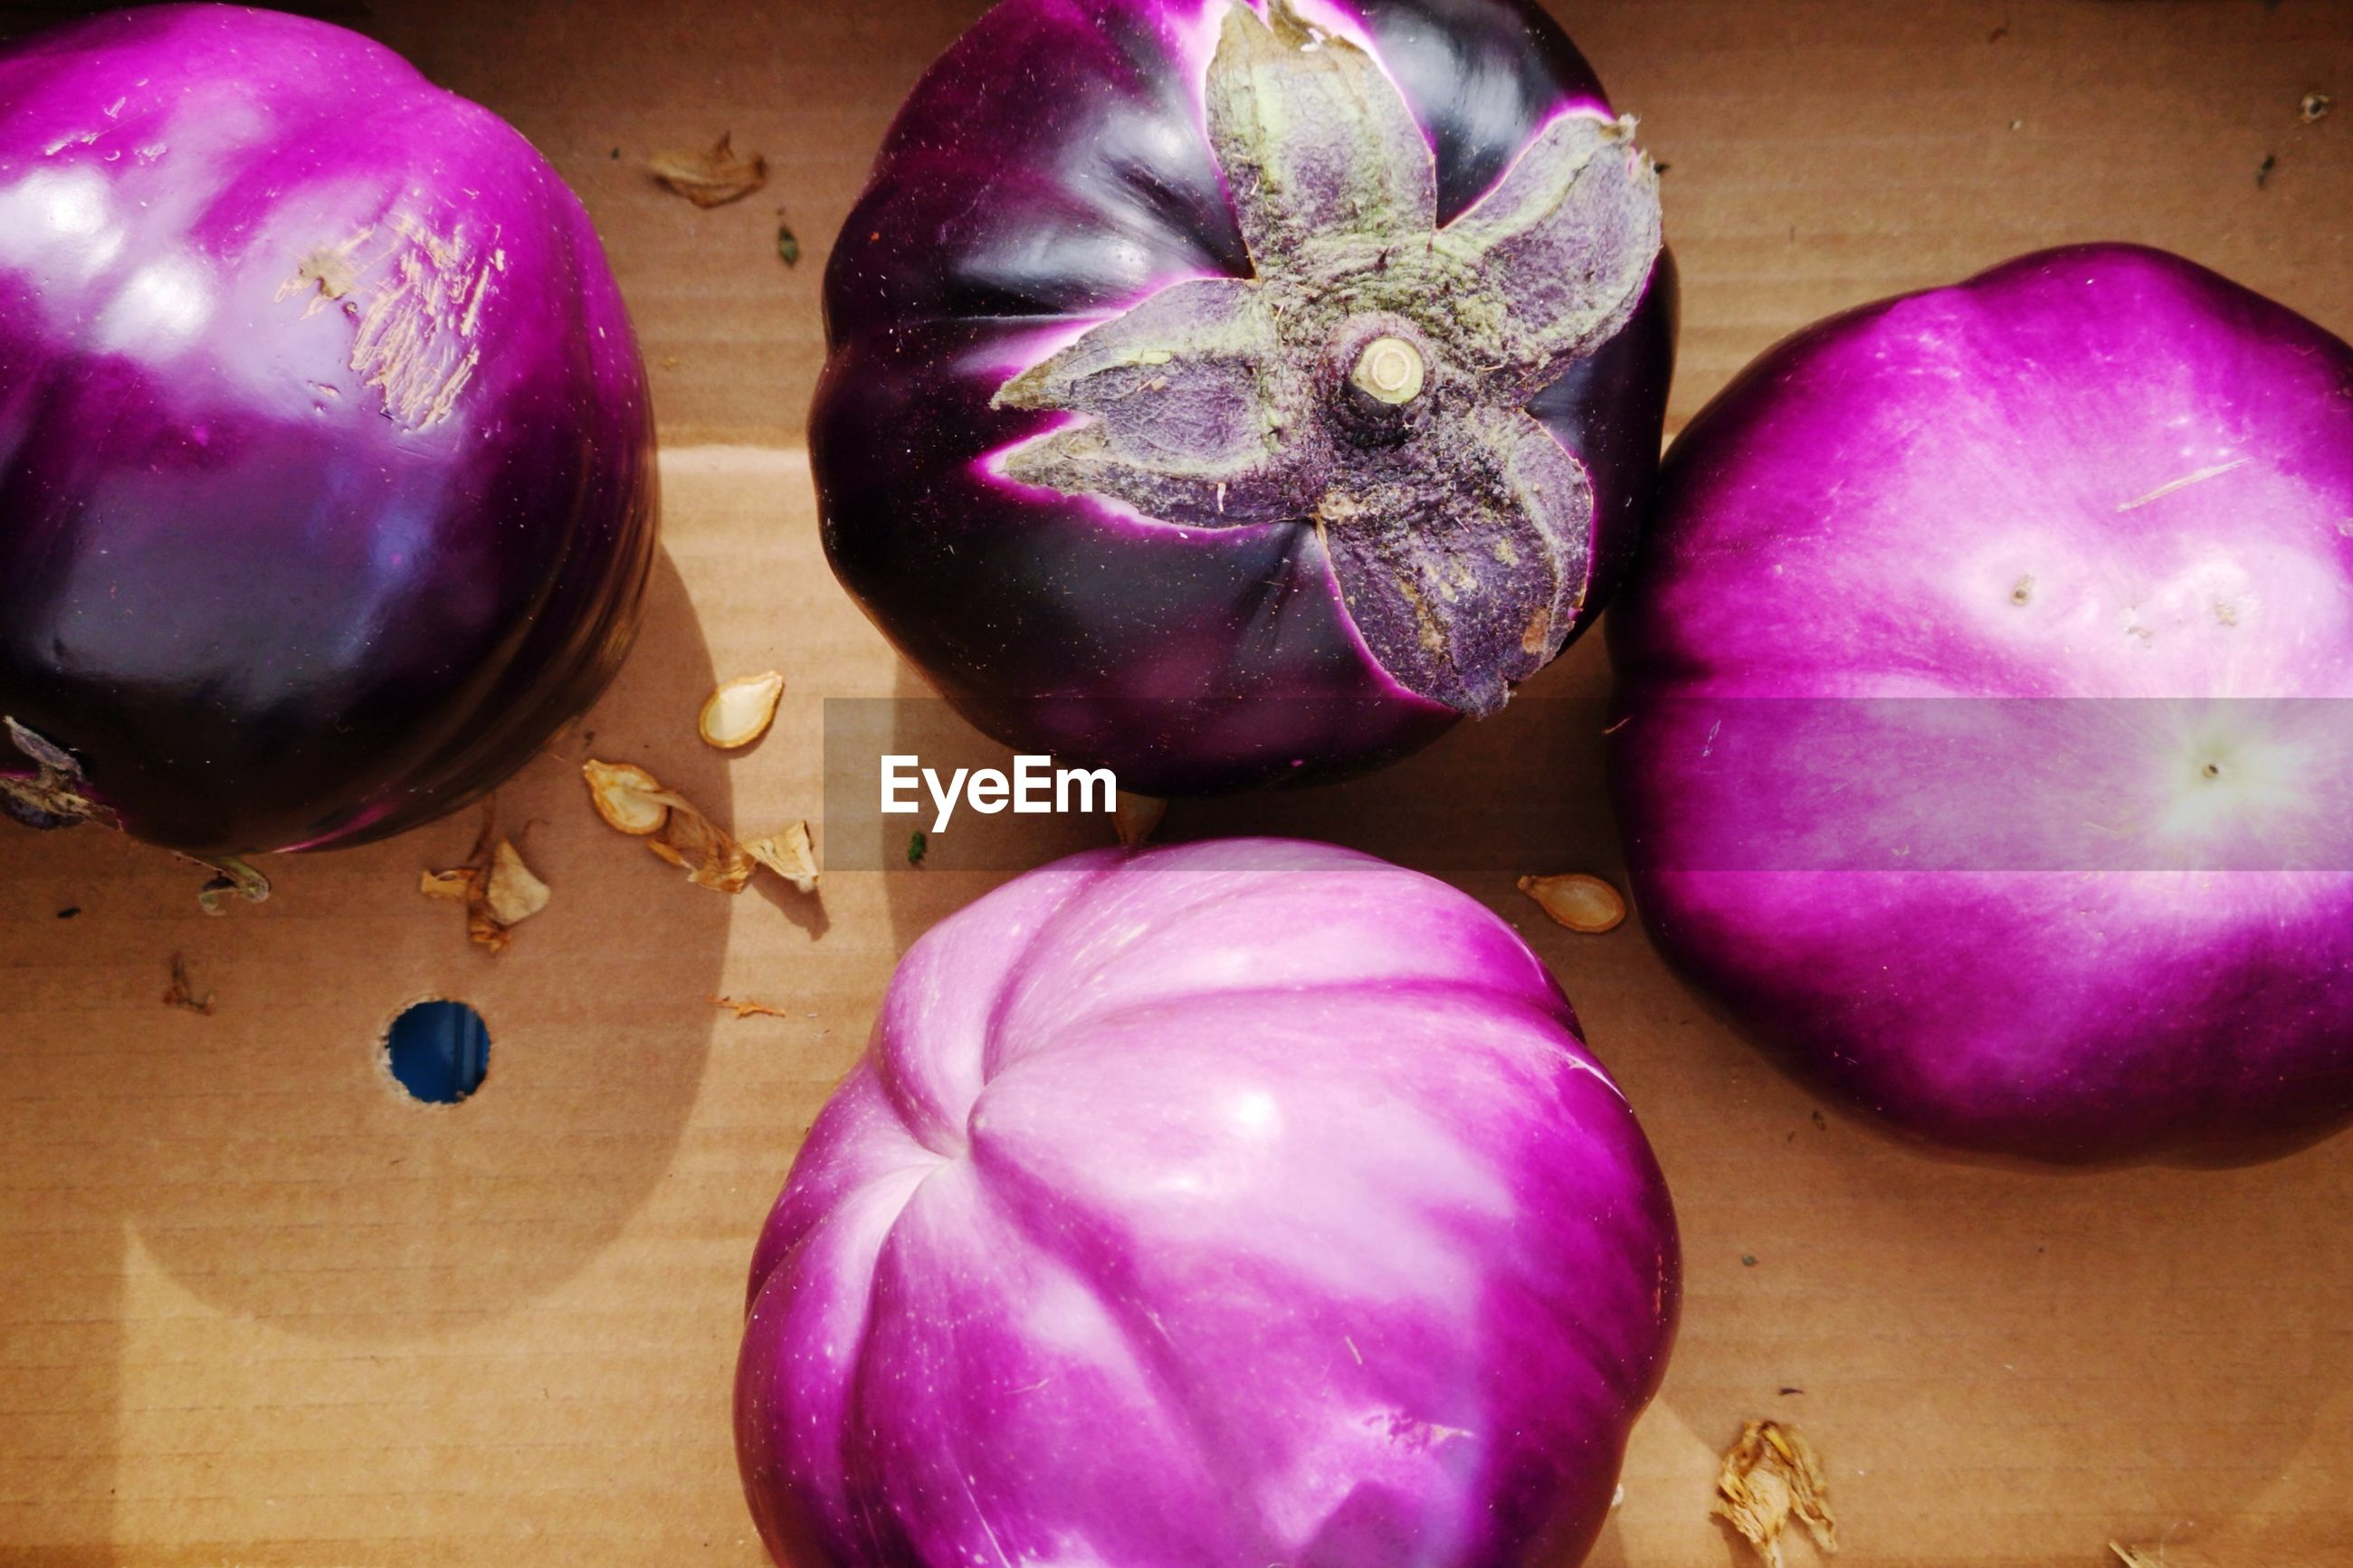 High angle view of purple vegetable on table